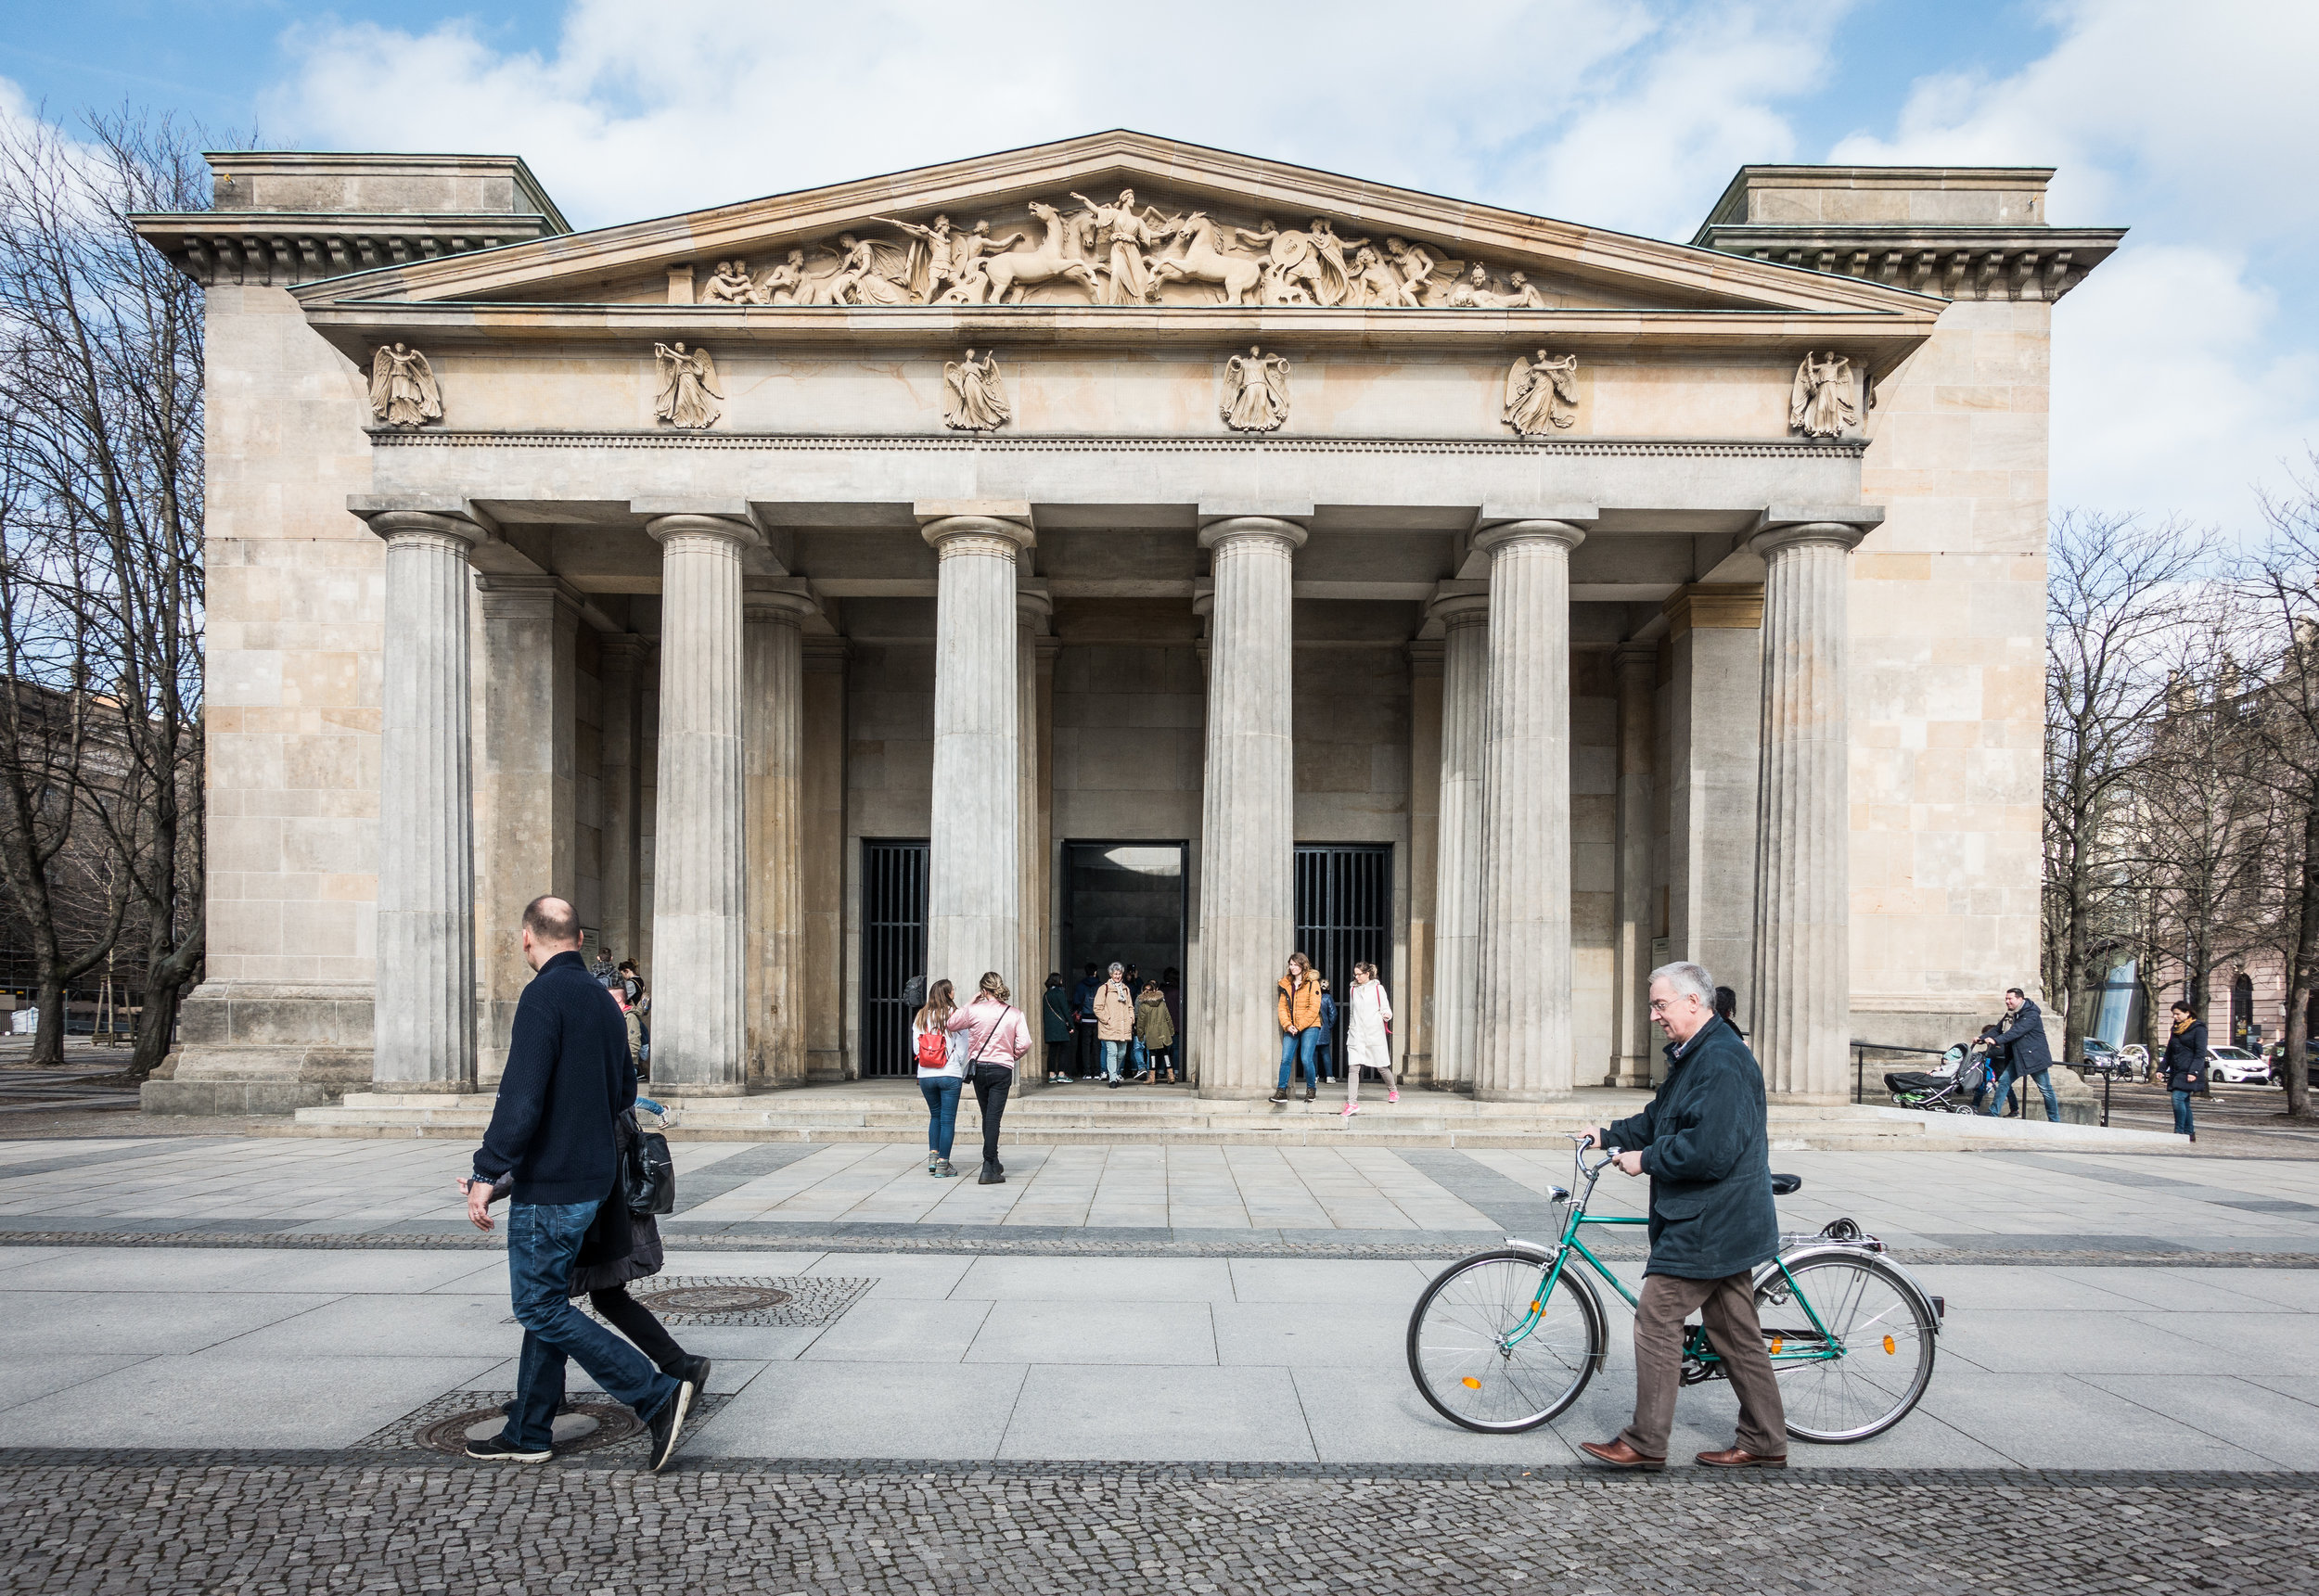 Exterior of the Neue Wache building